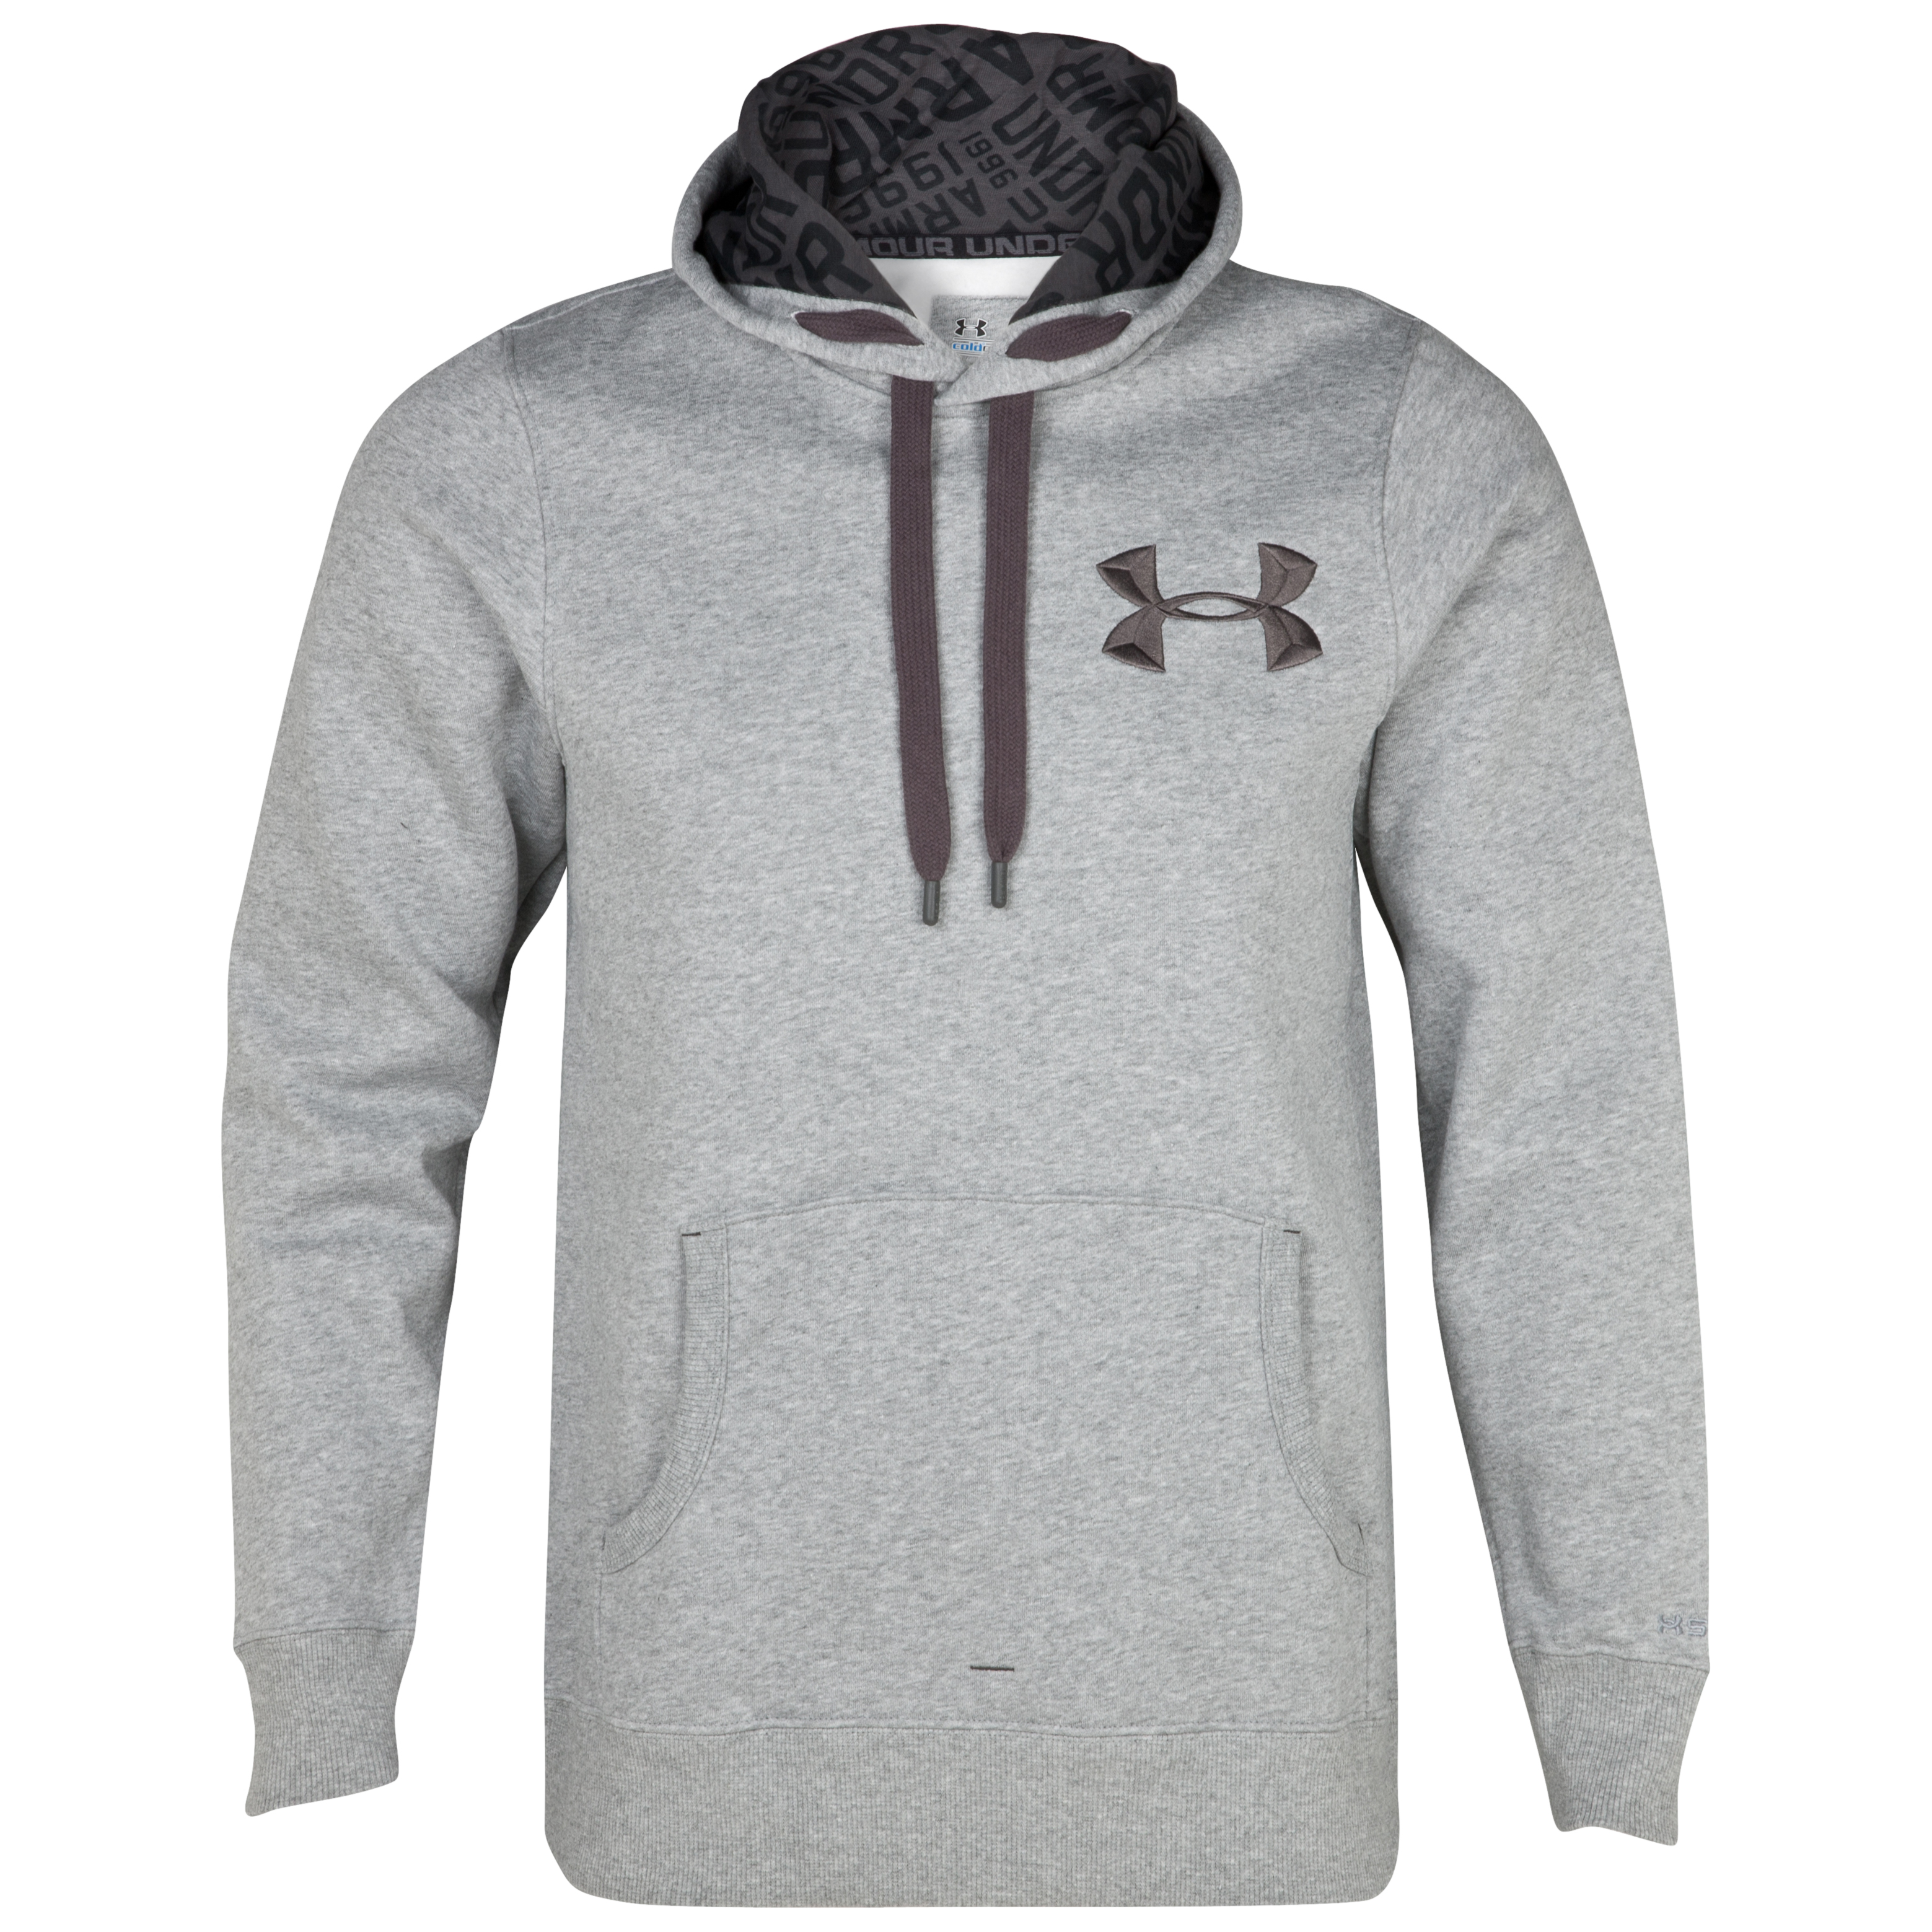 Under Armour Charged Cotton Storm Fleece Hoody - True Grey Heather/Charcoal